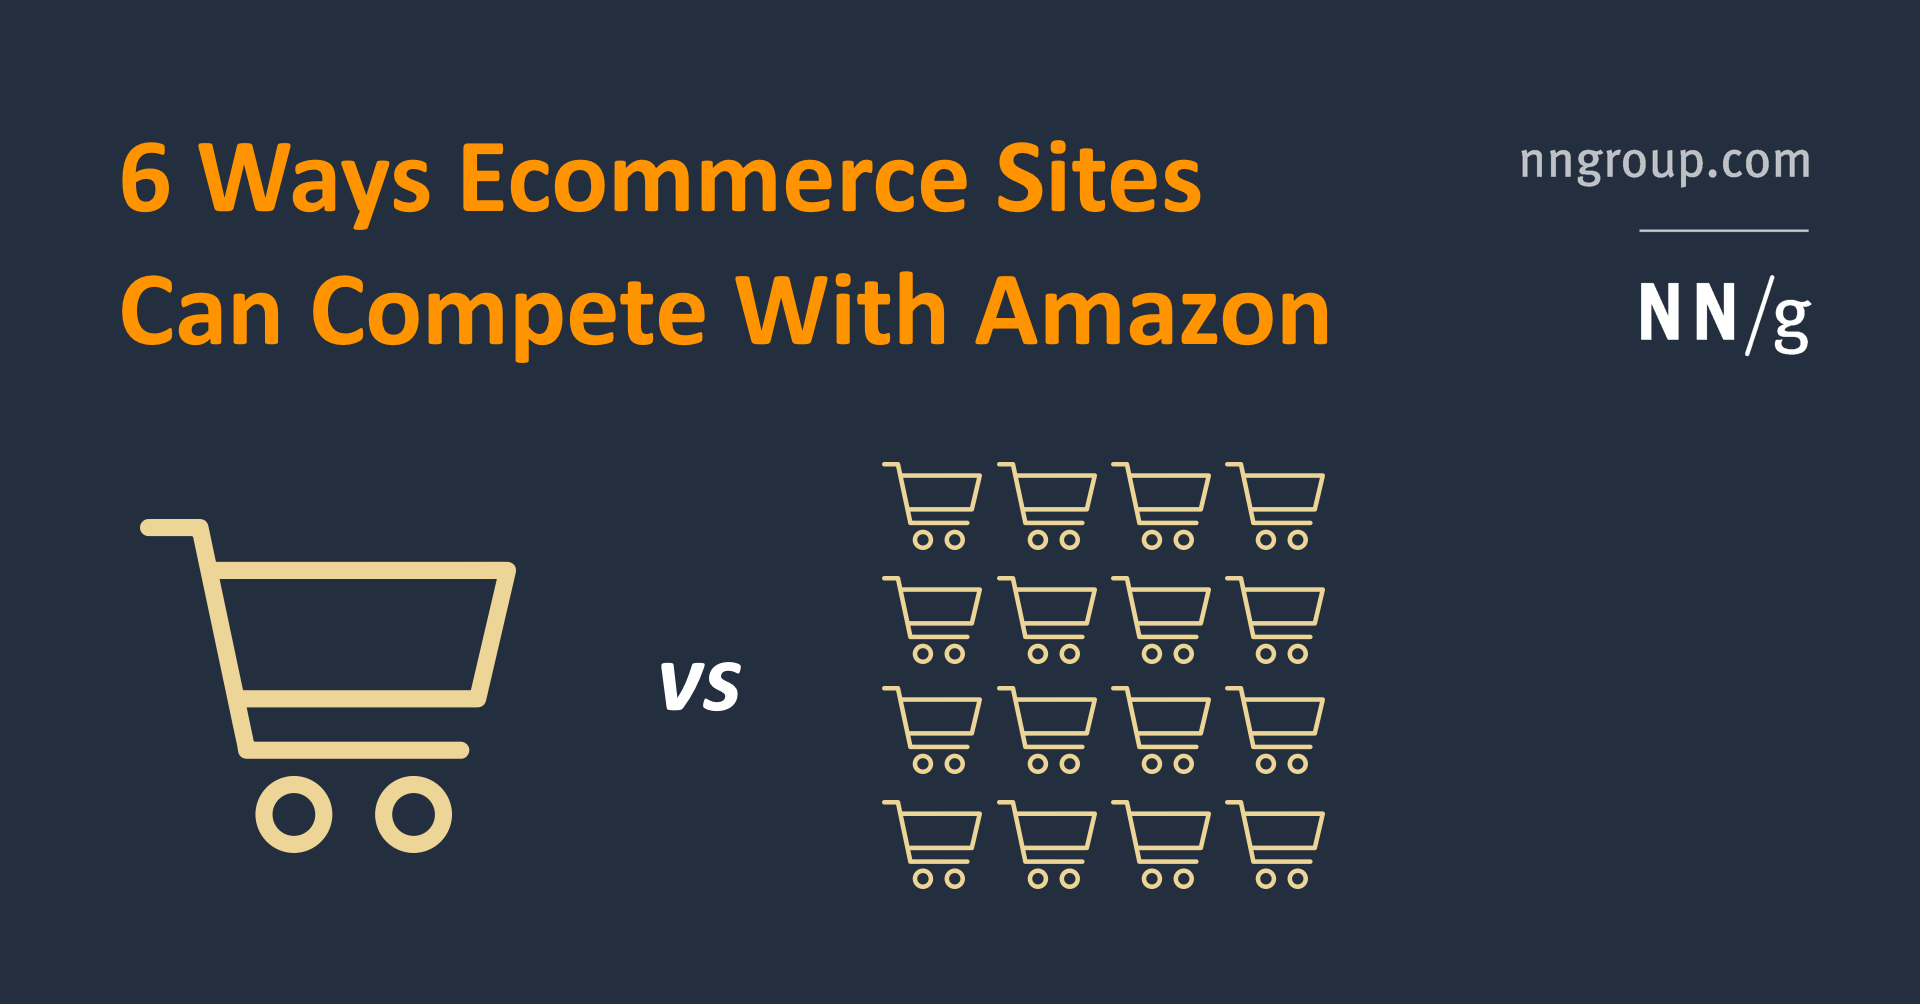 6 Ways Ecommerce Sites Can Compete With Amazon